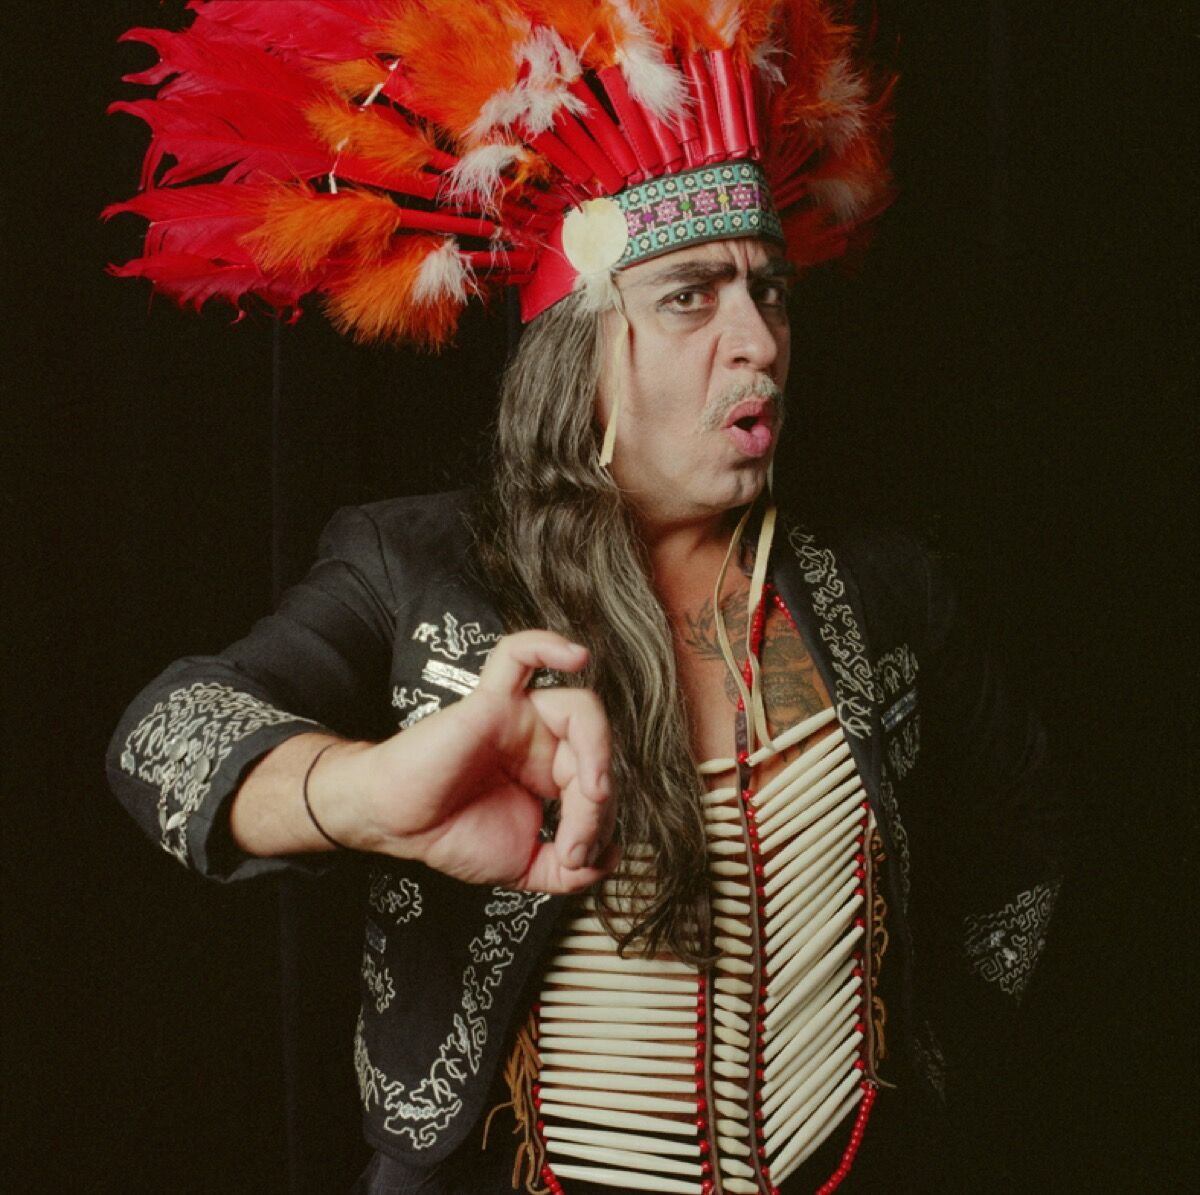 Portrait of Guillermo Gómez-Peña as a deviant shaman. Photo by Chicano photographer Xavier Tavera. Courtesy of La Pocha Nostra.